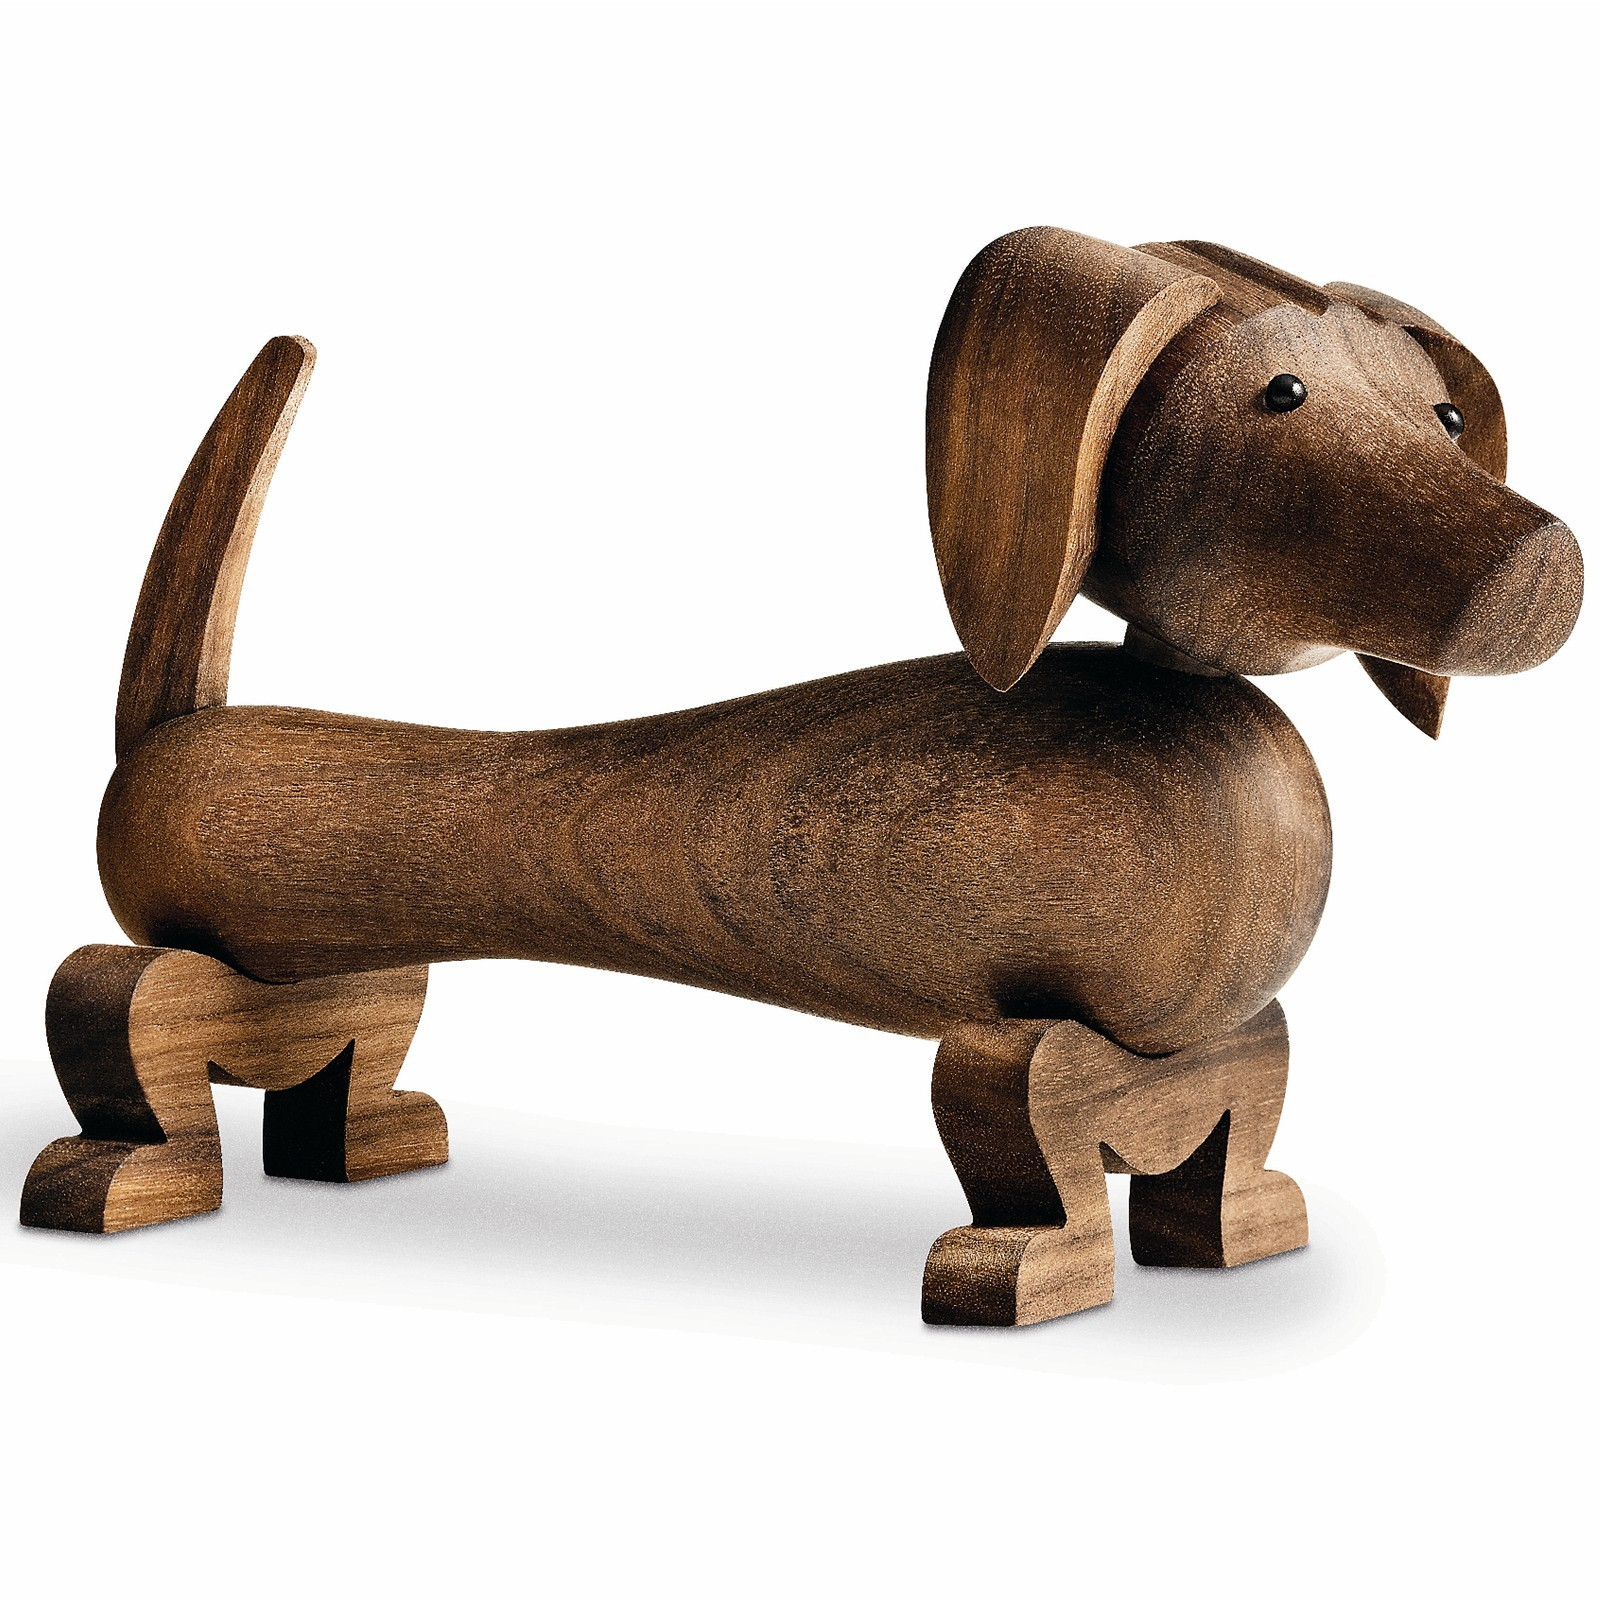 holzfigur dackel hund 10 5 cm kay bojesen hund. Black Bedroom Furniture Sets. Home Design Ideas